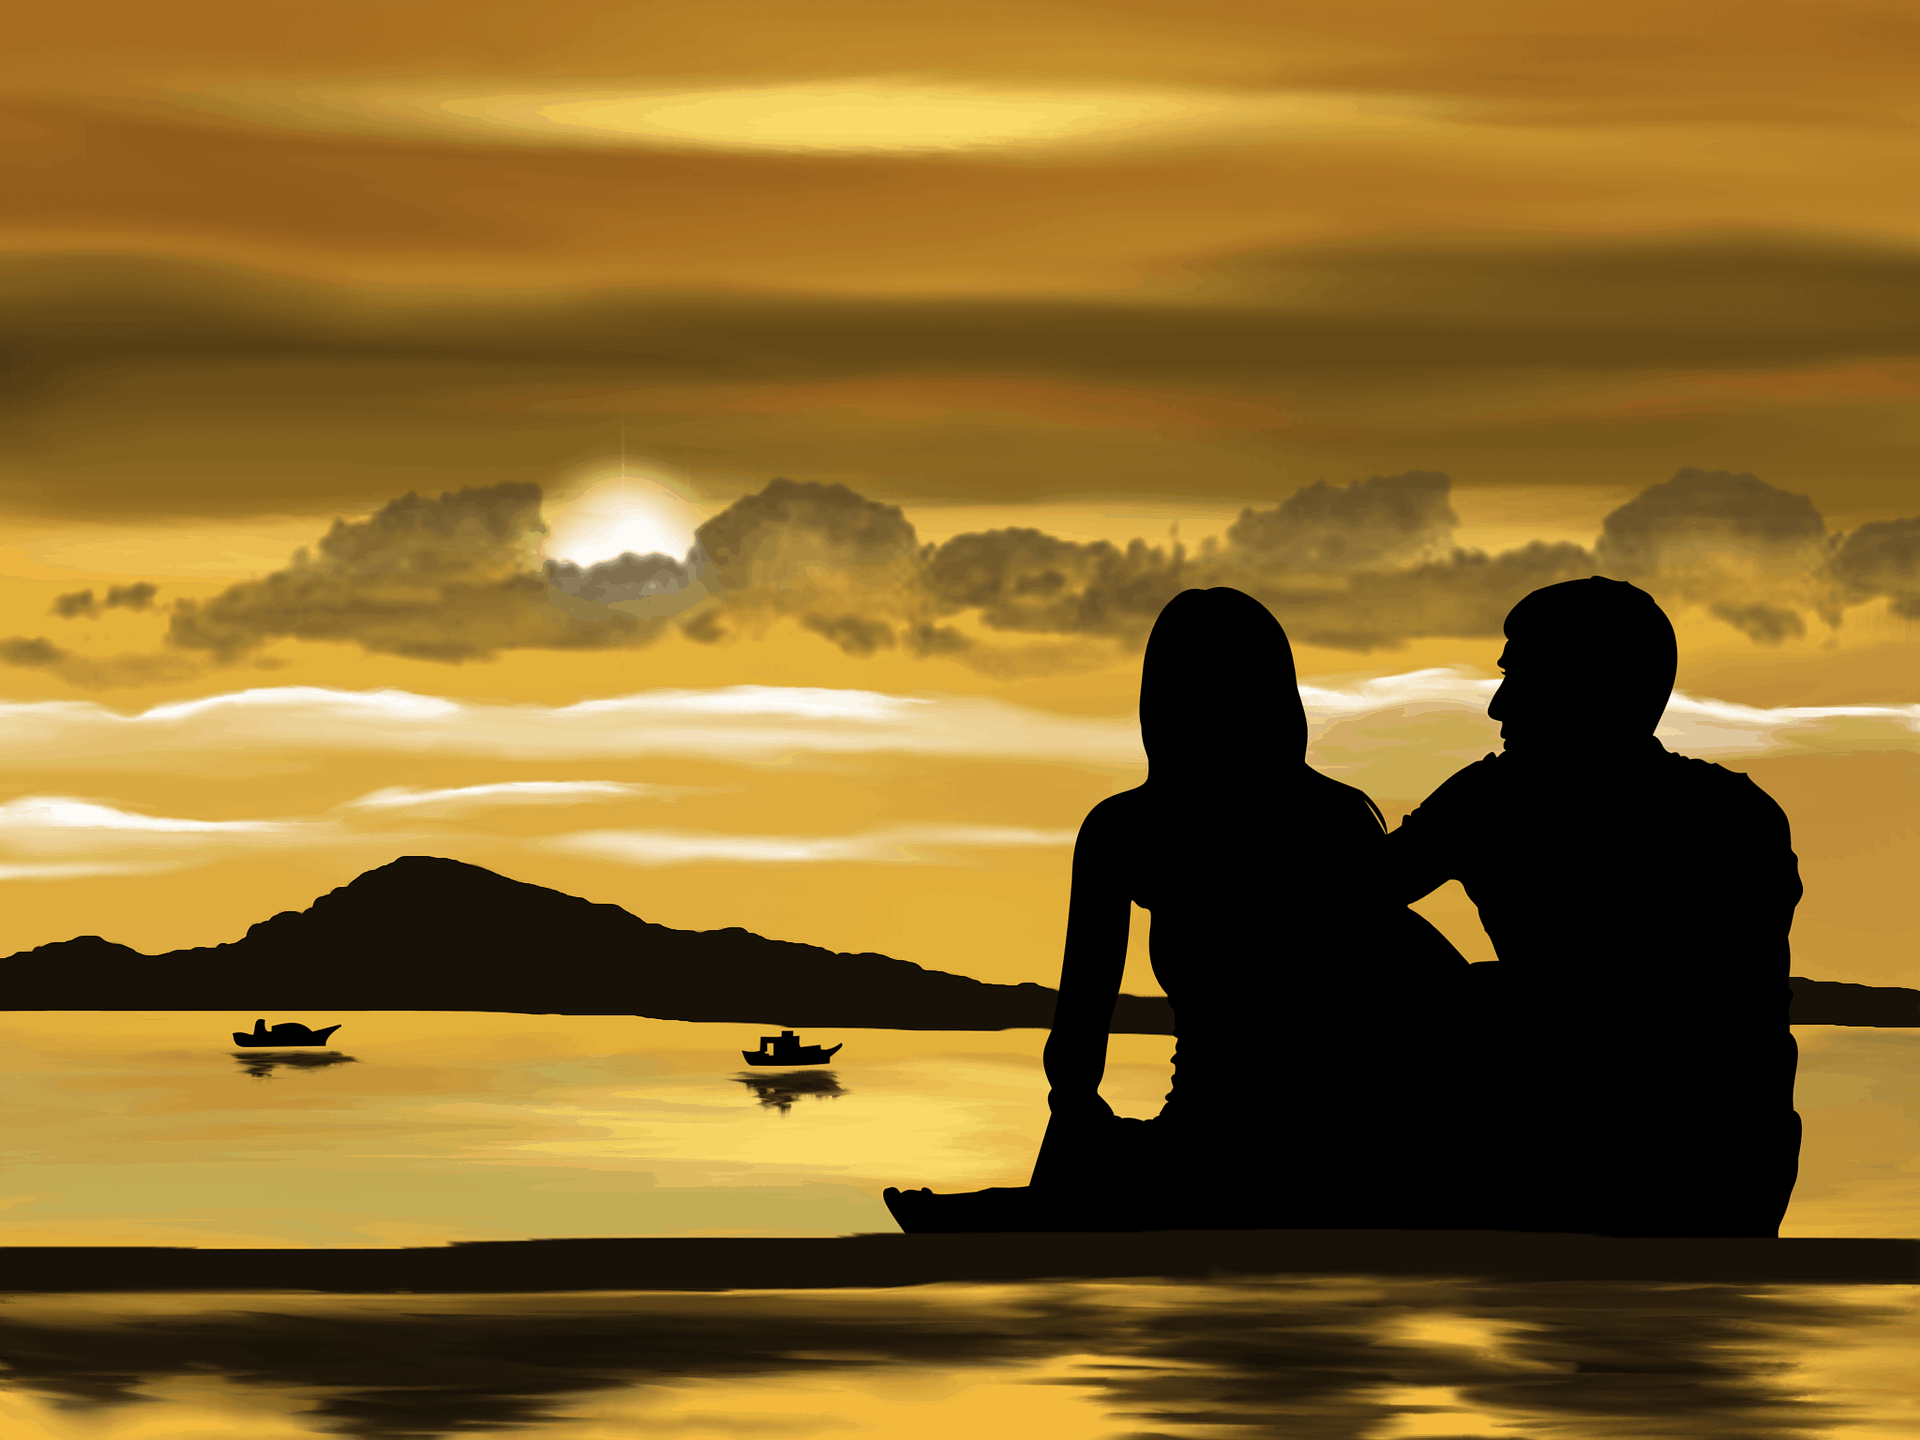 Cultivating Relationships: 6 Ways To Bring More Happiness